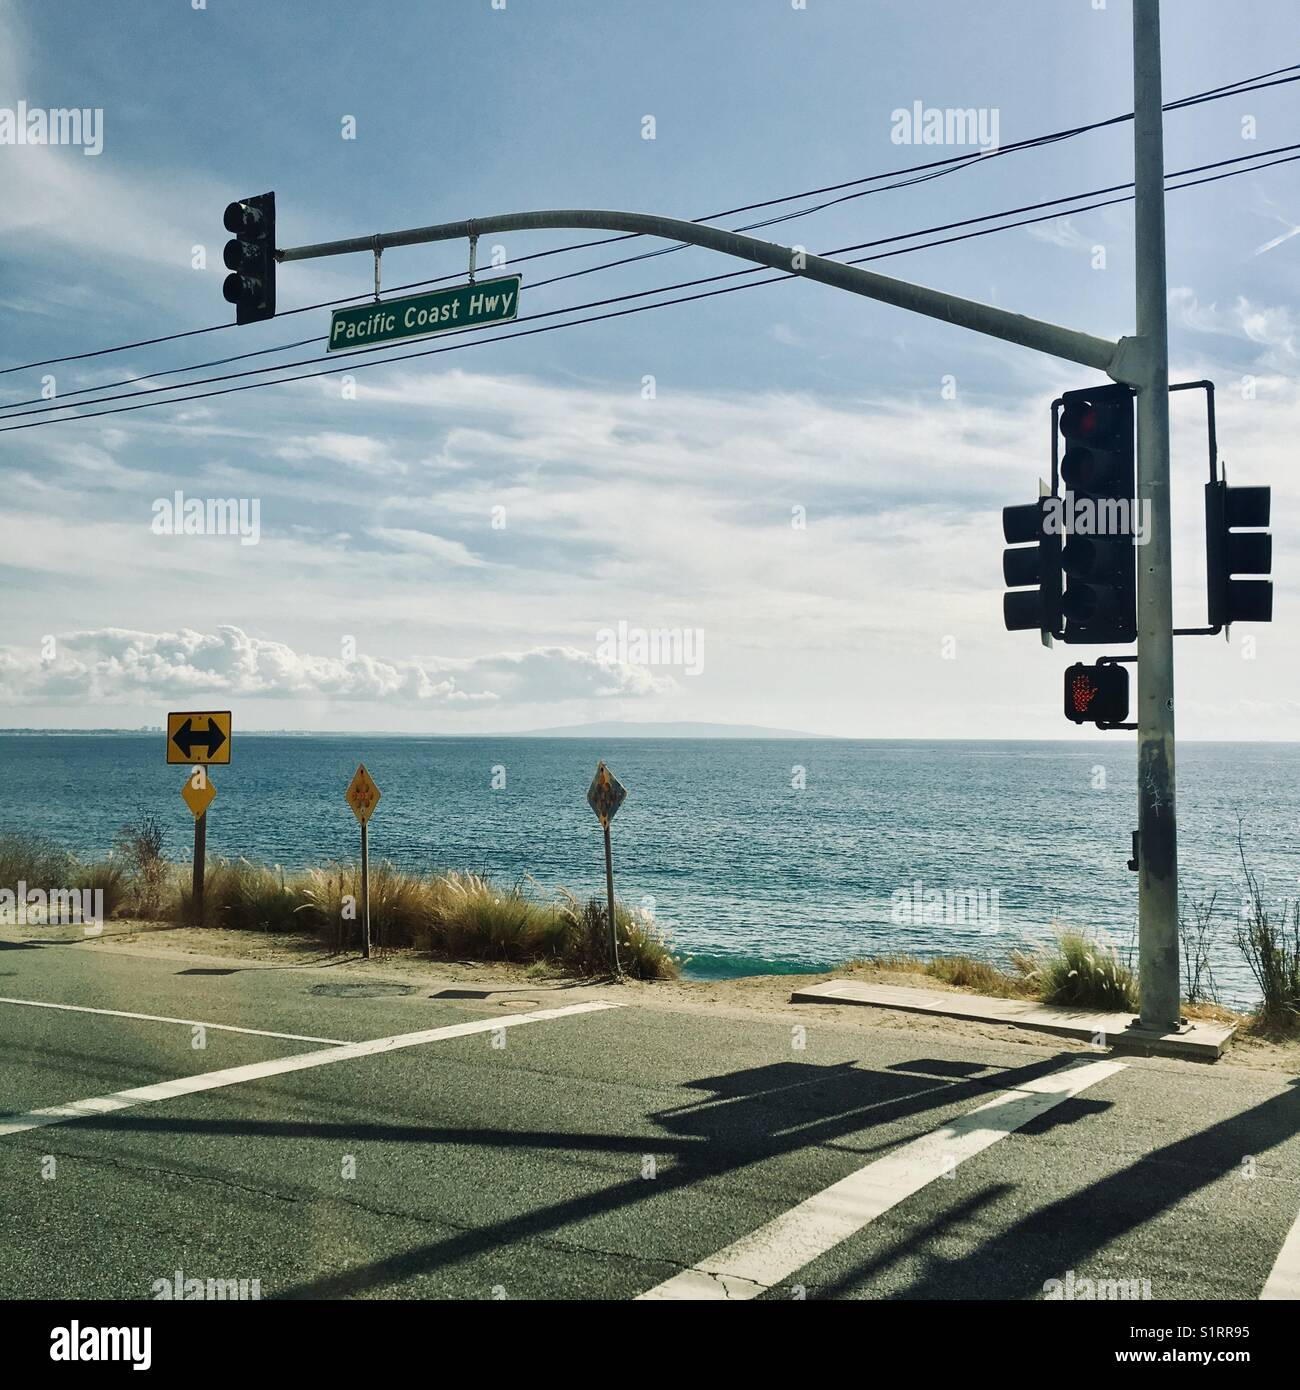 Pacific Coast Highway 1 in Malibu Los Angeles California USA - Stock Image